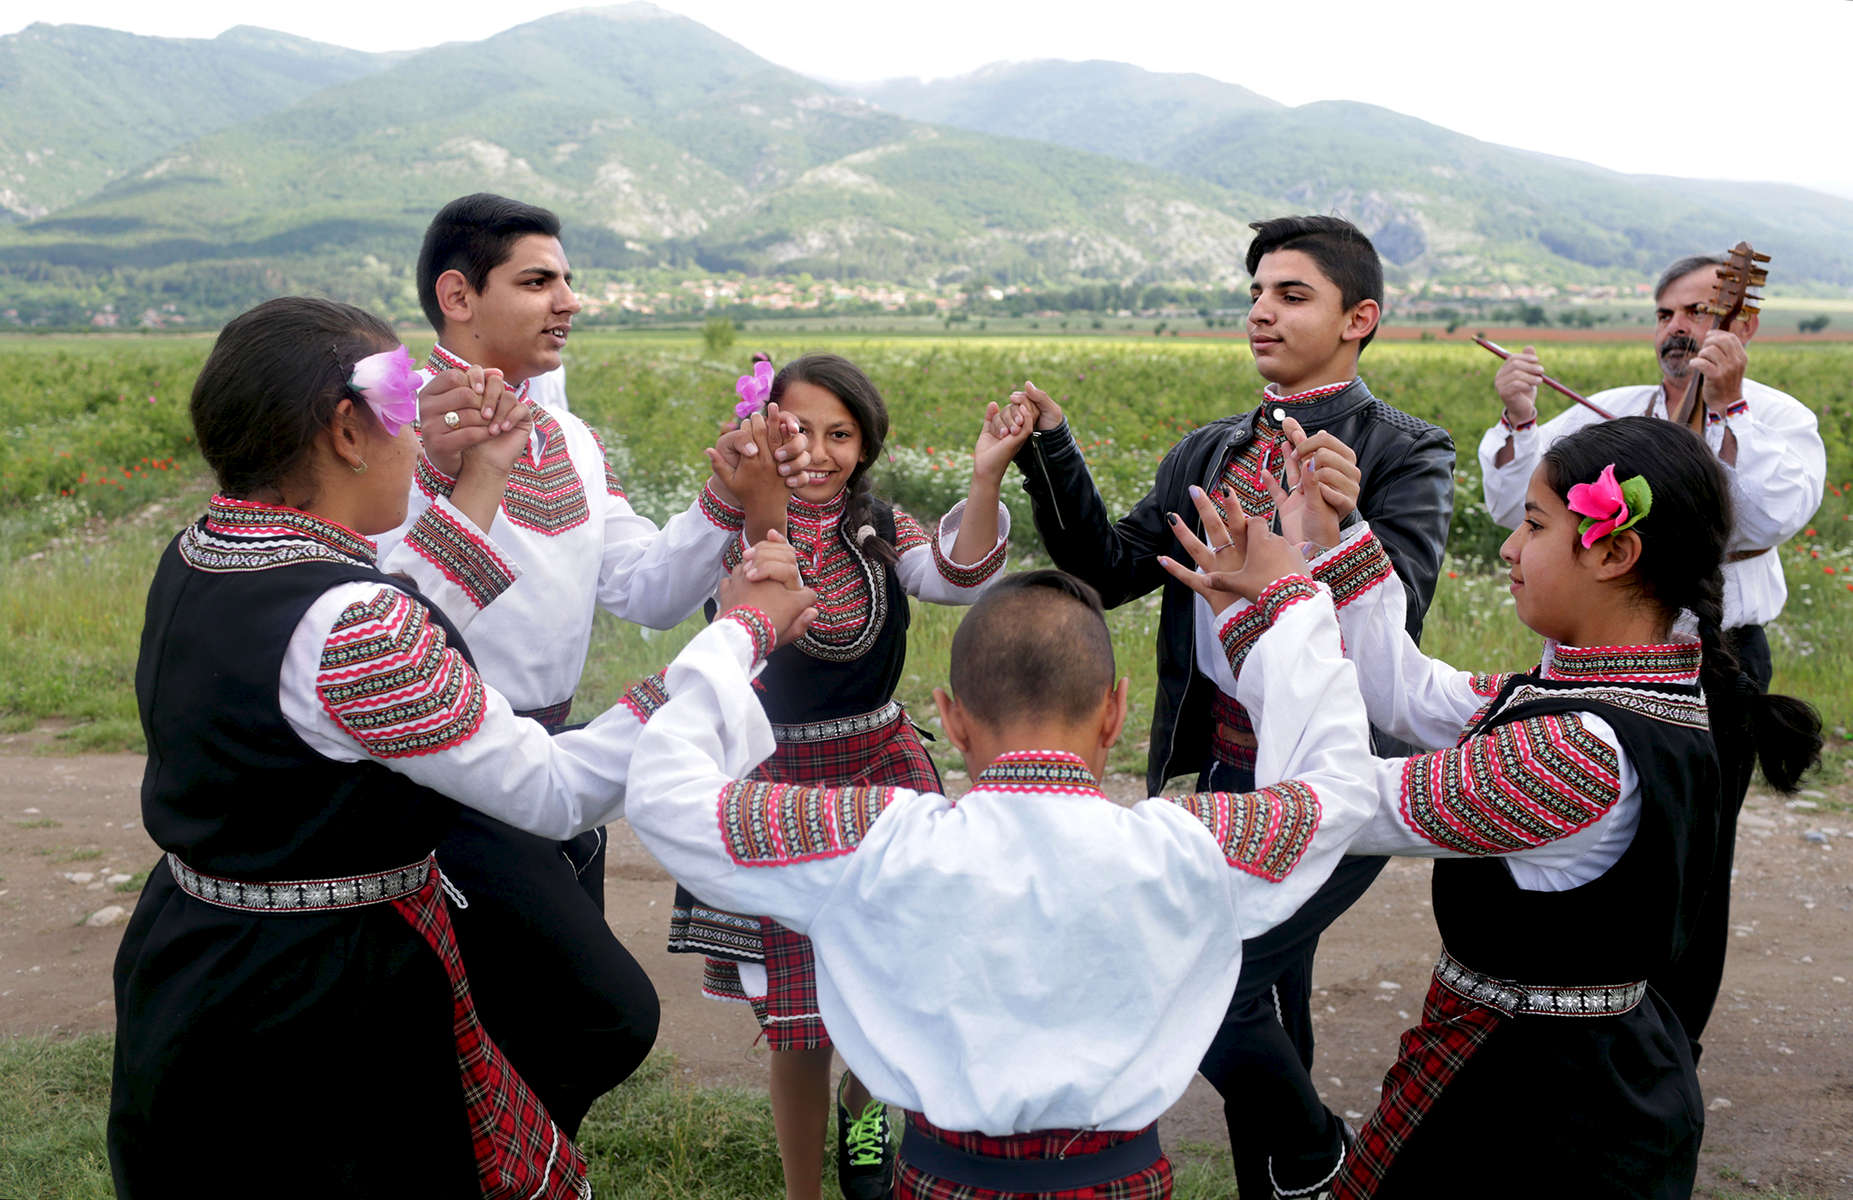 Children wearing traditional folk garb dance during a rose-picking and folk dance event organized by the municipality, in rose fields between Sheinovo and Gorno Sahrane, in Bulgaria on May 27, 2018.Photo by: Yana Paskova for National Geographic Traveler